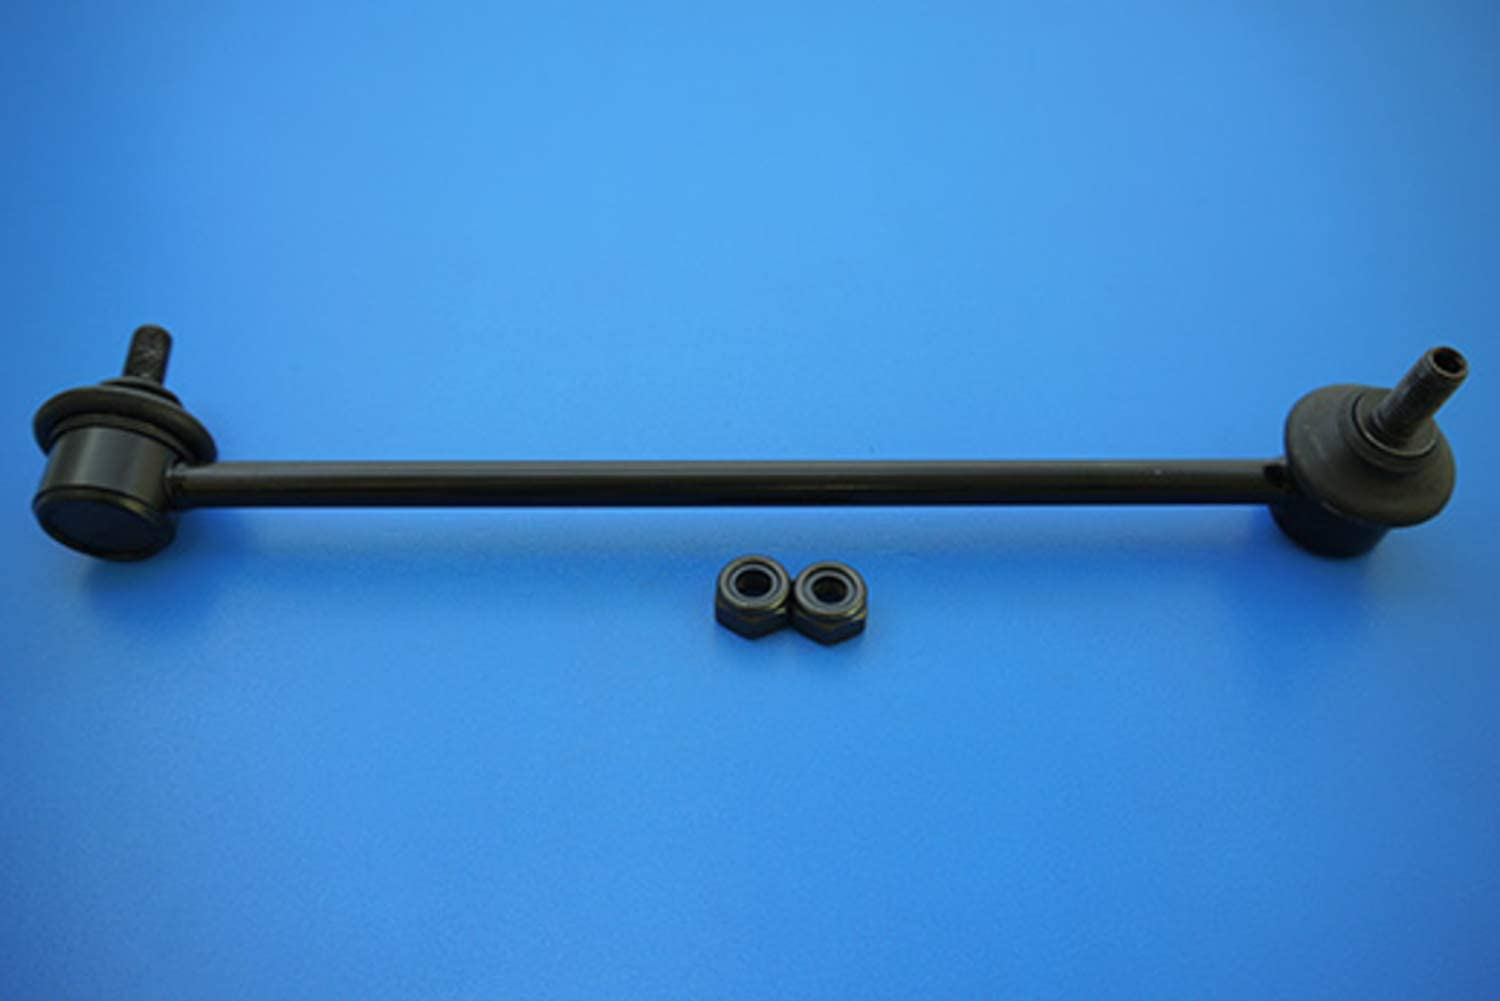 Package include One Sway Bar Link Only 2007 fits Kia Rio Front Right Suspension Stabilizer Bar Link With Five Years Warranty